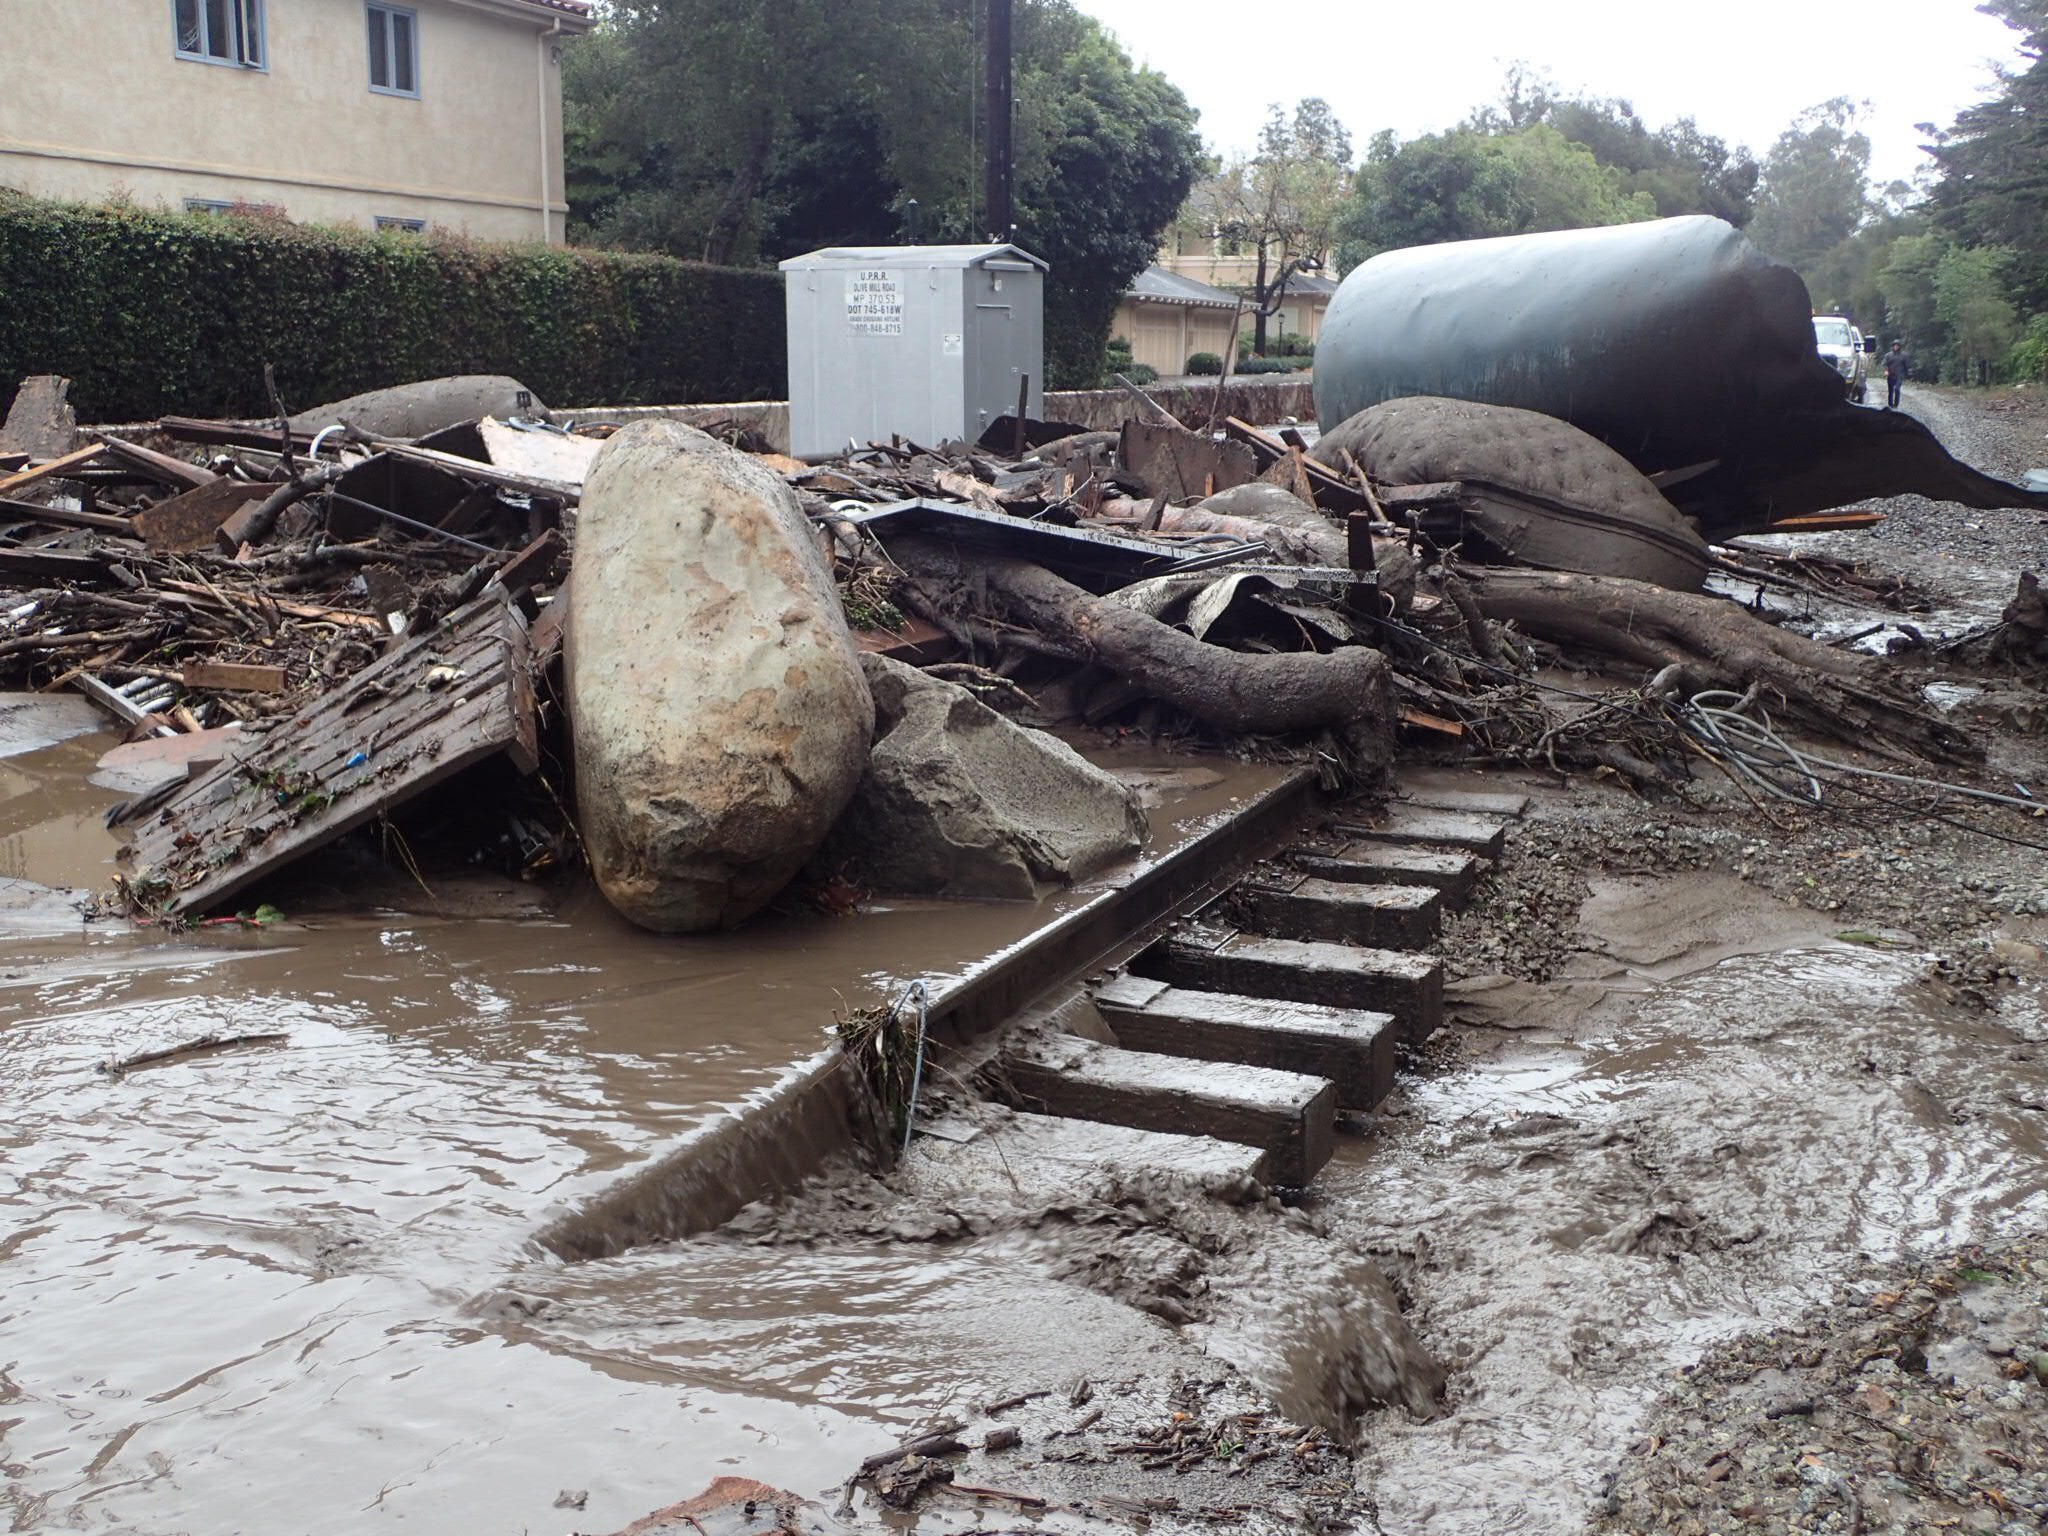 The main line of the Union Pacific Railroad through Montecito is blocked with mudflow and debris due to heavy rains. (Photo: Mike Eliason / Santa Barbara County Fire)